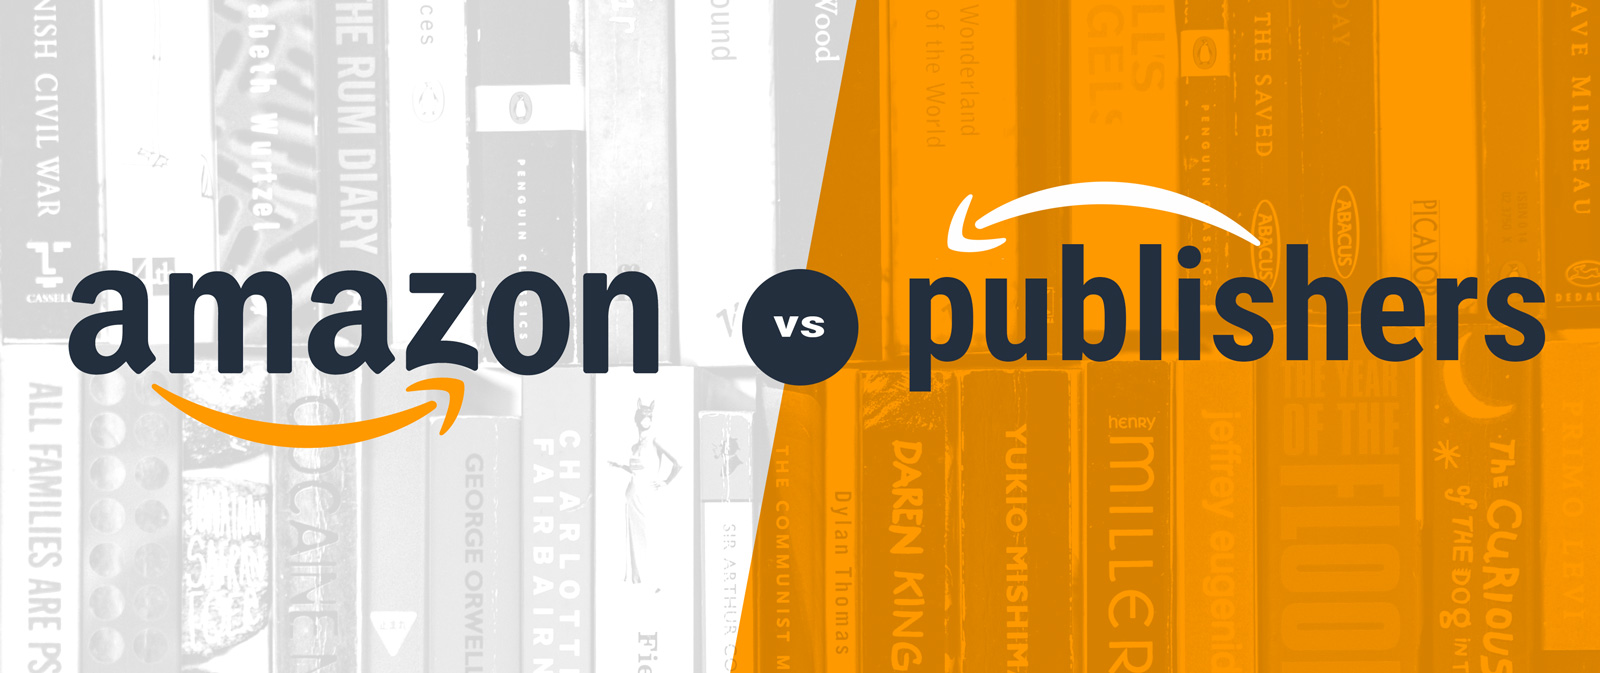 Should publishers be worried of an increasingly powerful Amazon?